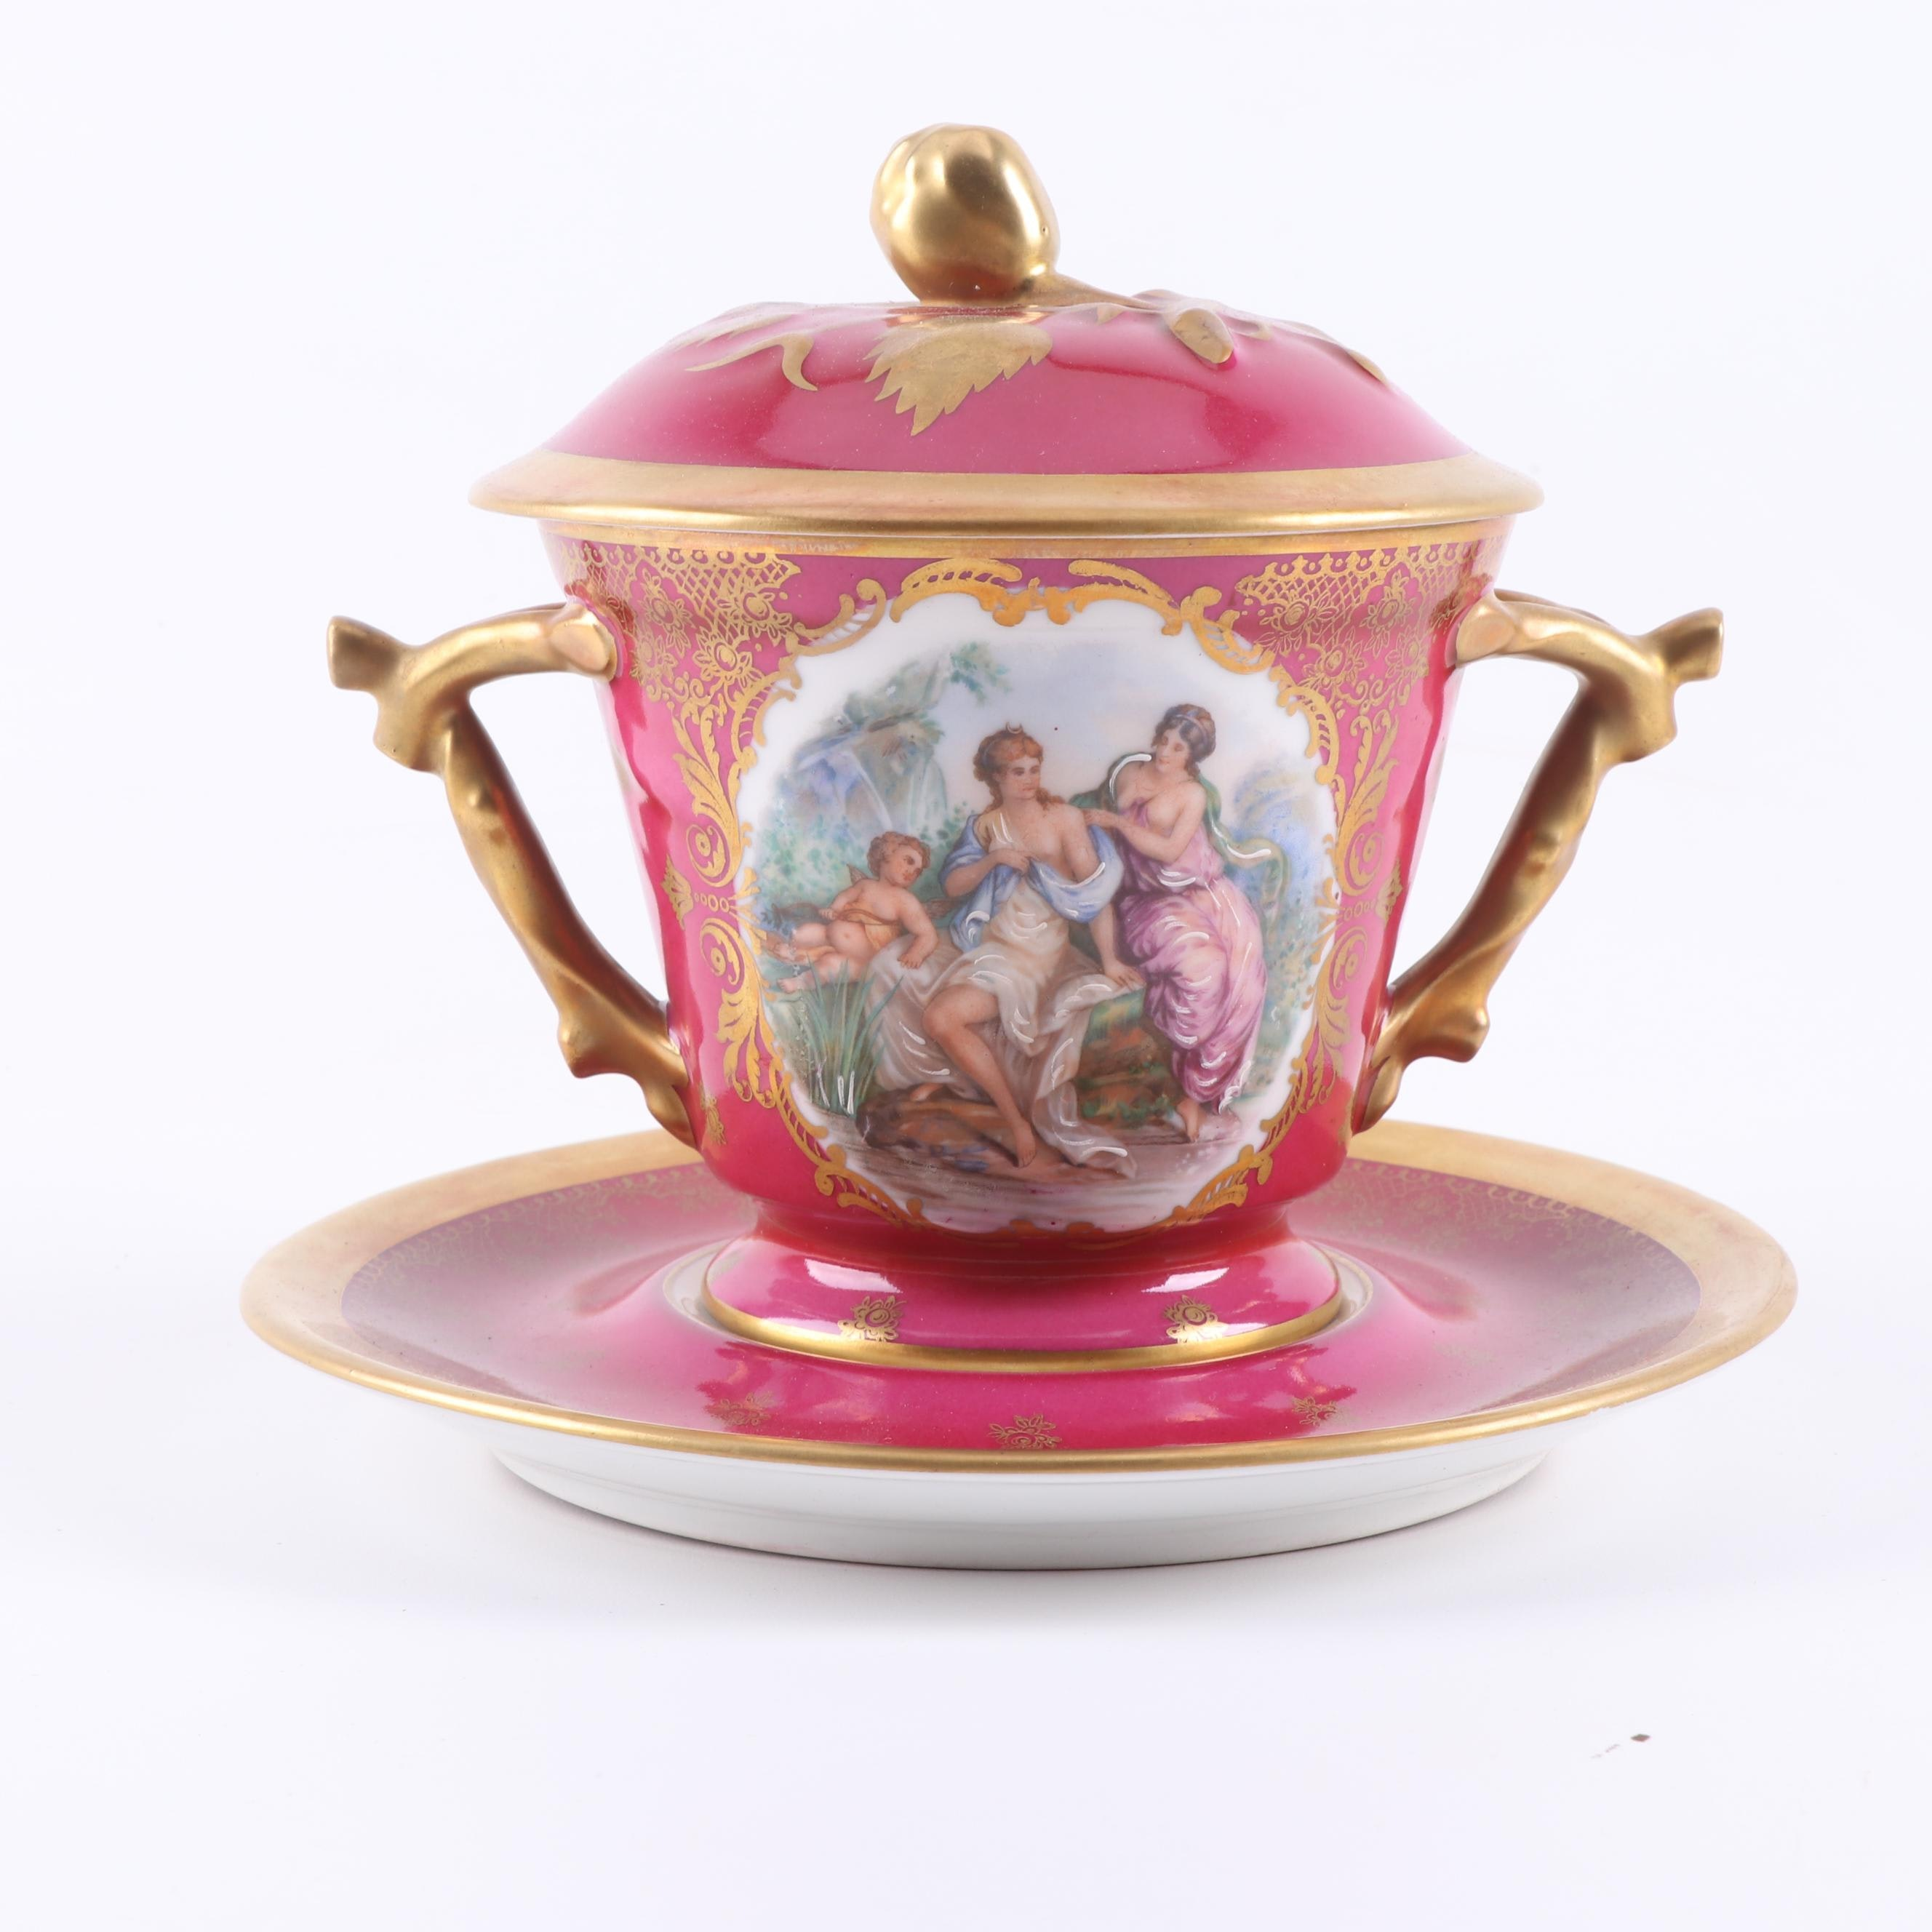 Castel Limoges Covered Condiment Dish with Underplate, circa 1955-79